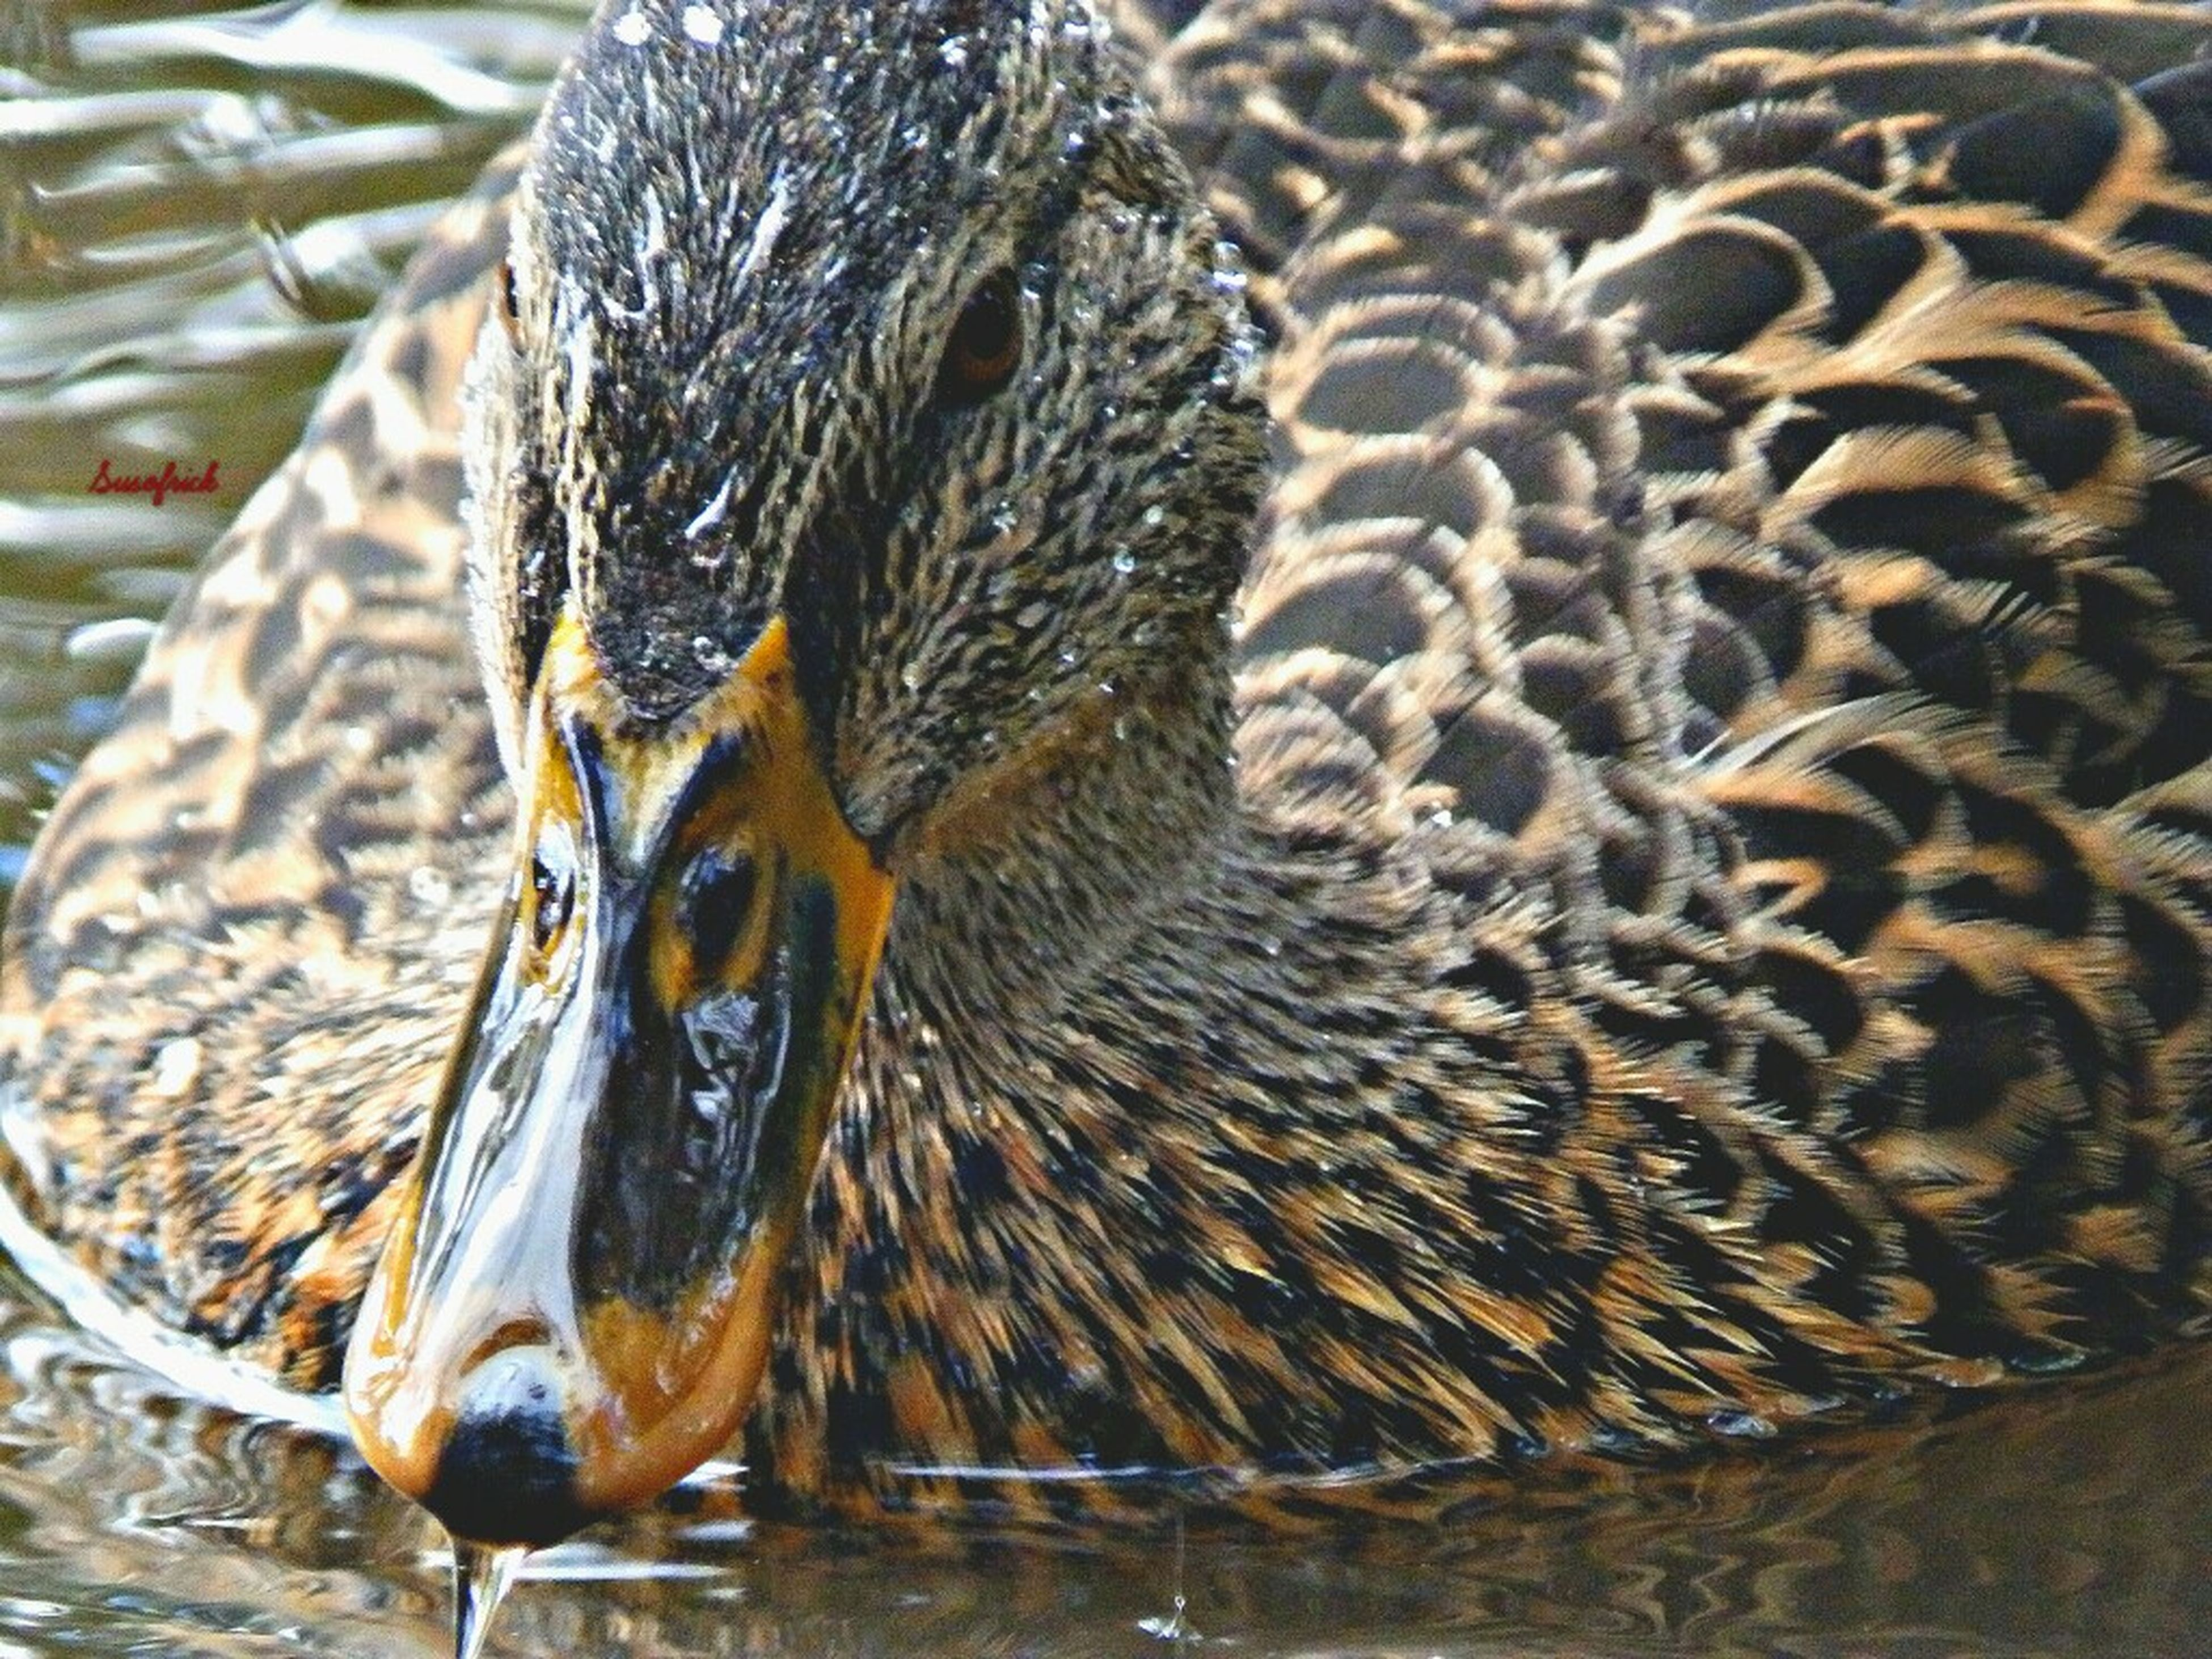 animal themes, animals in the wild, wildlife, one animal, bird, water, close-up, animal markings, nature, swimming, side view, zoology, focus on foreground, beak, animals in captivity, animal head, duck, outdoors, no people, day